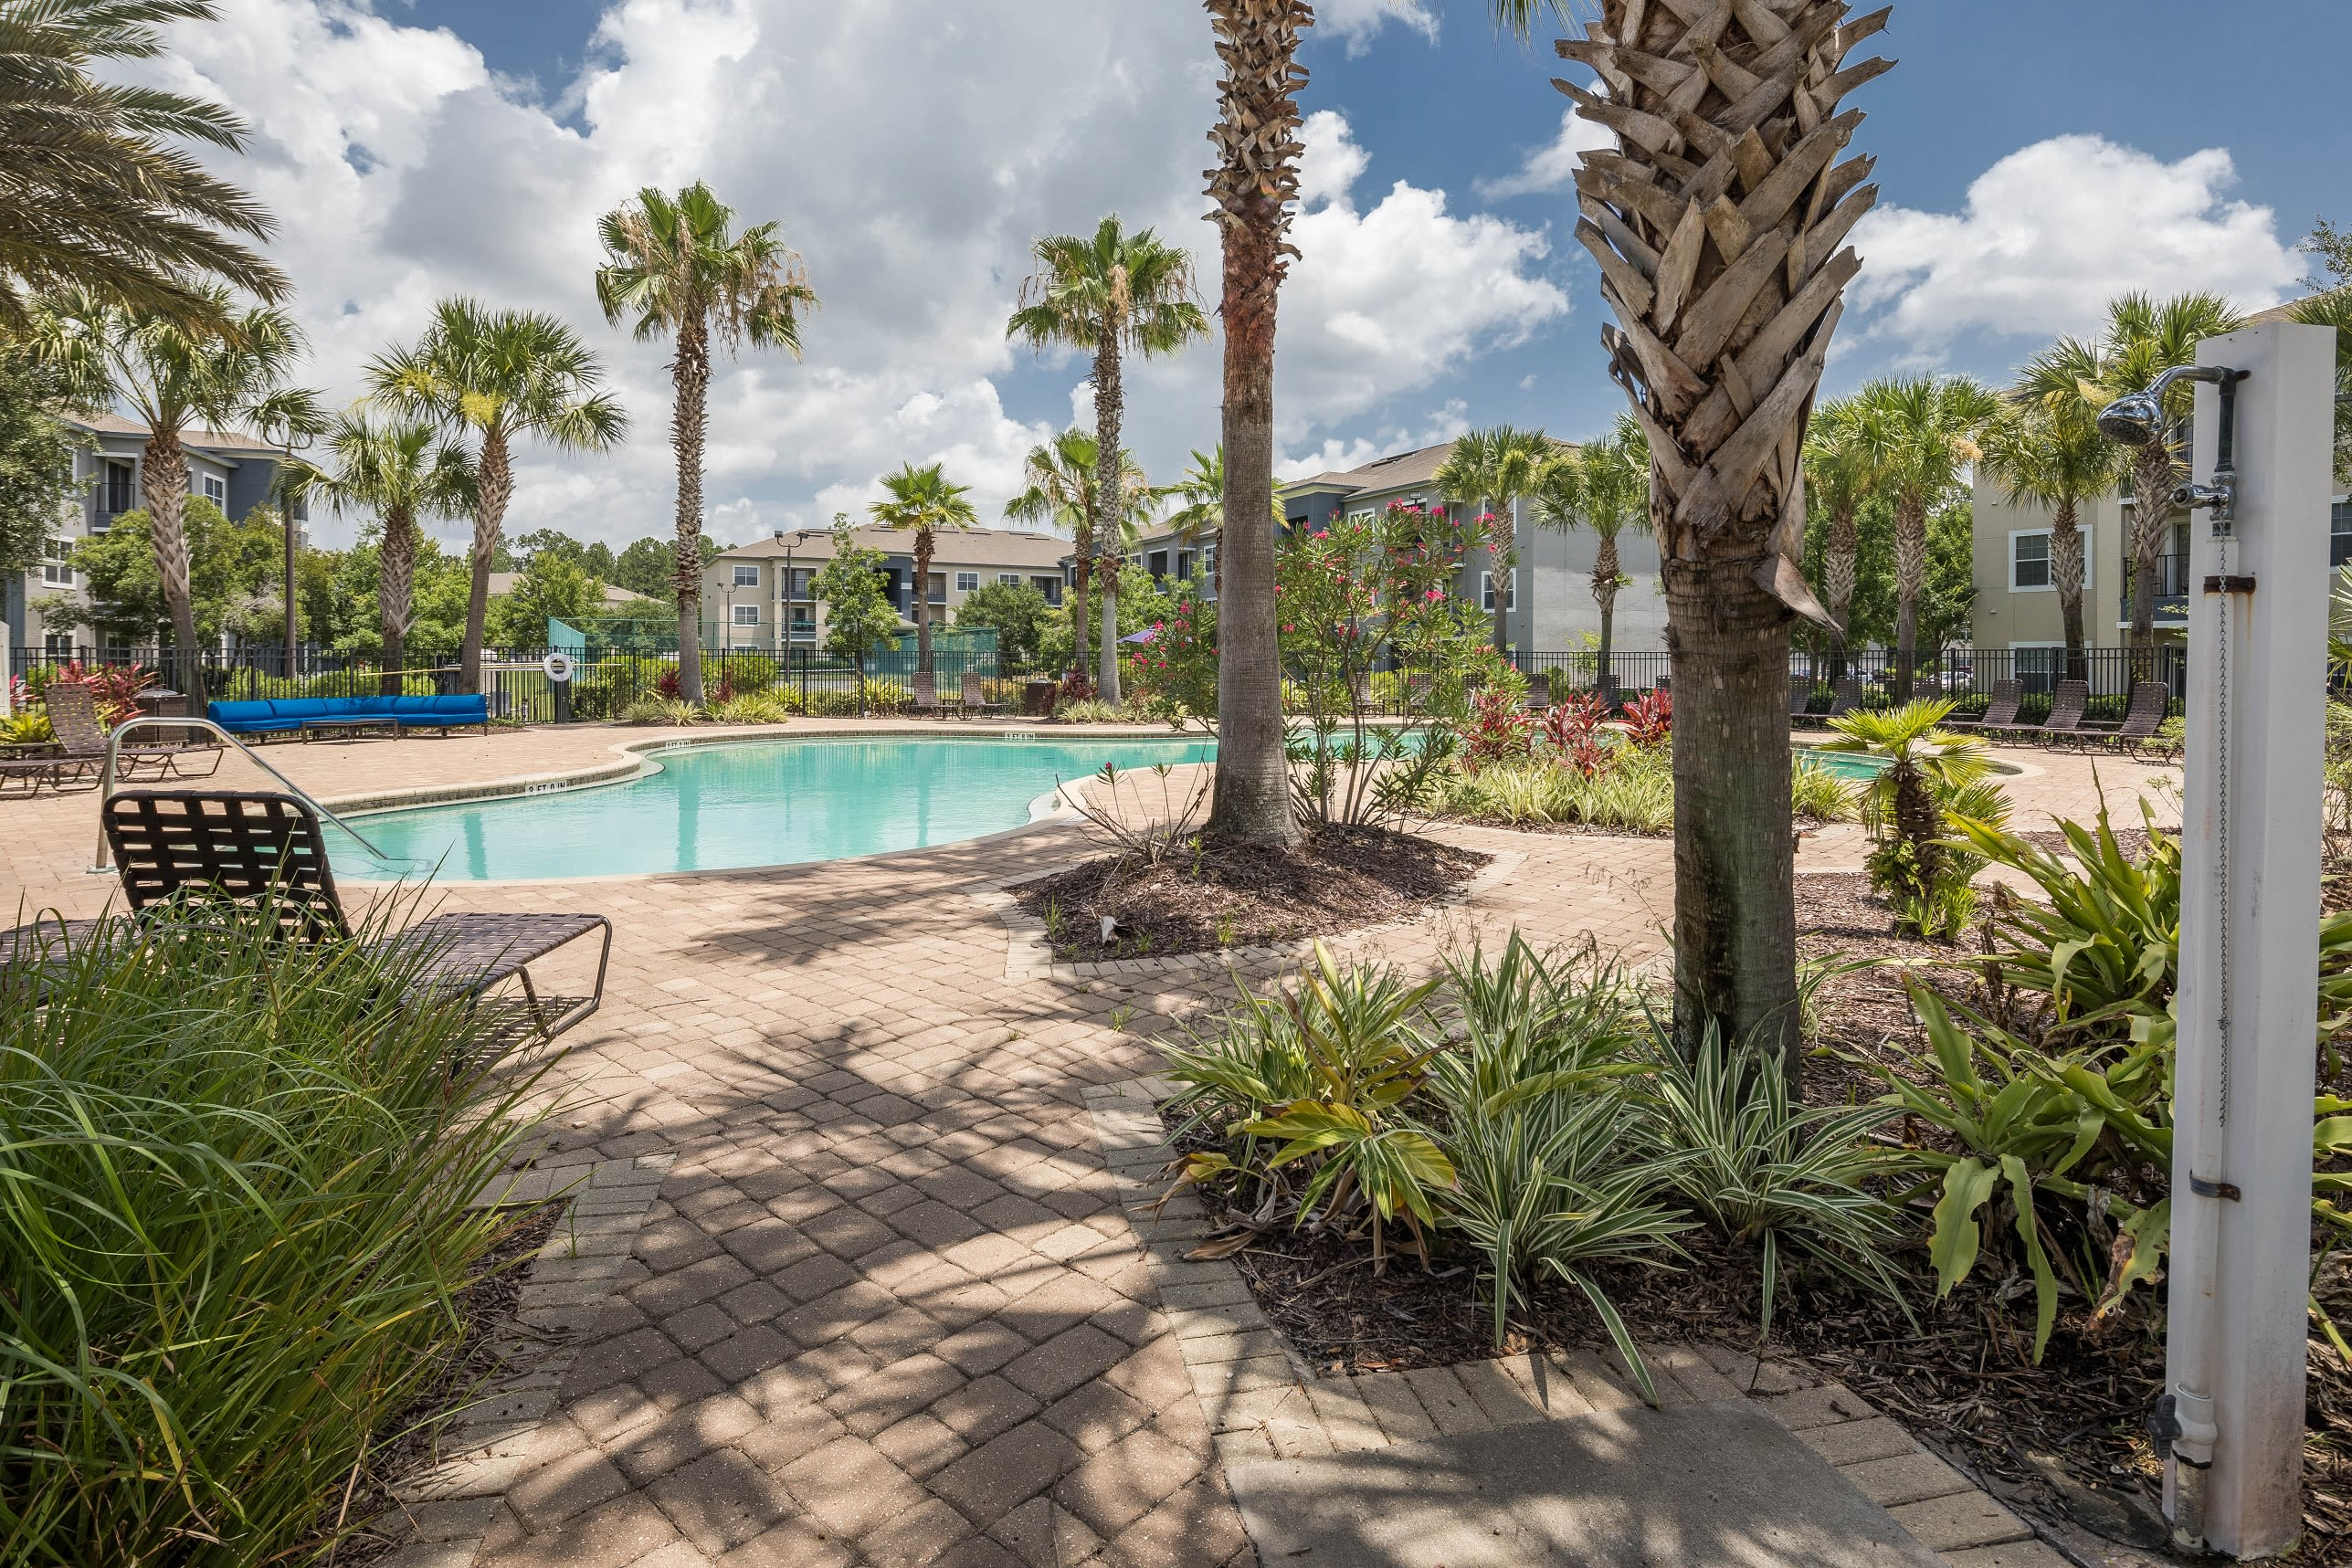 Resort style pool with palm trees at Mezza in Jacksonville, Florida